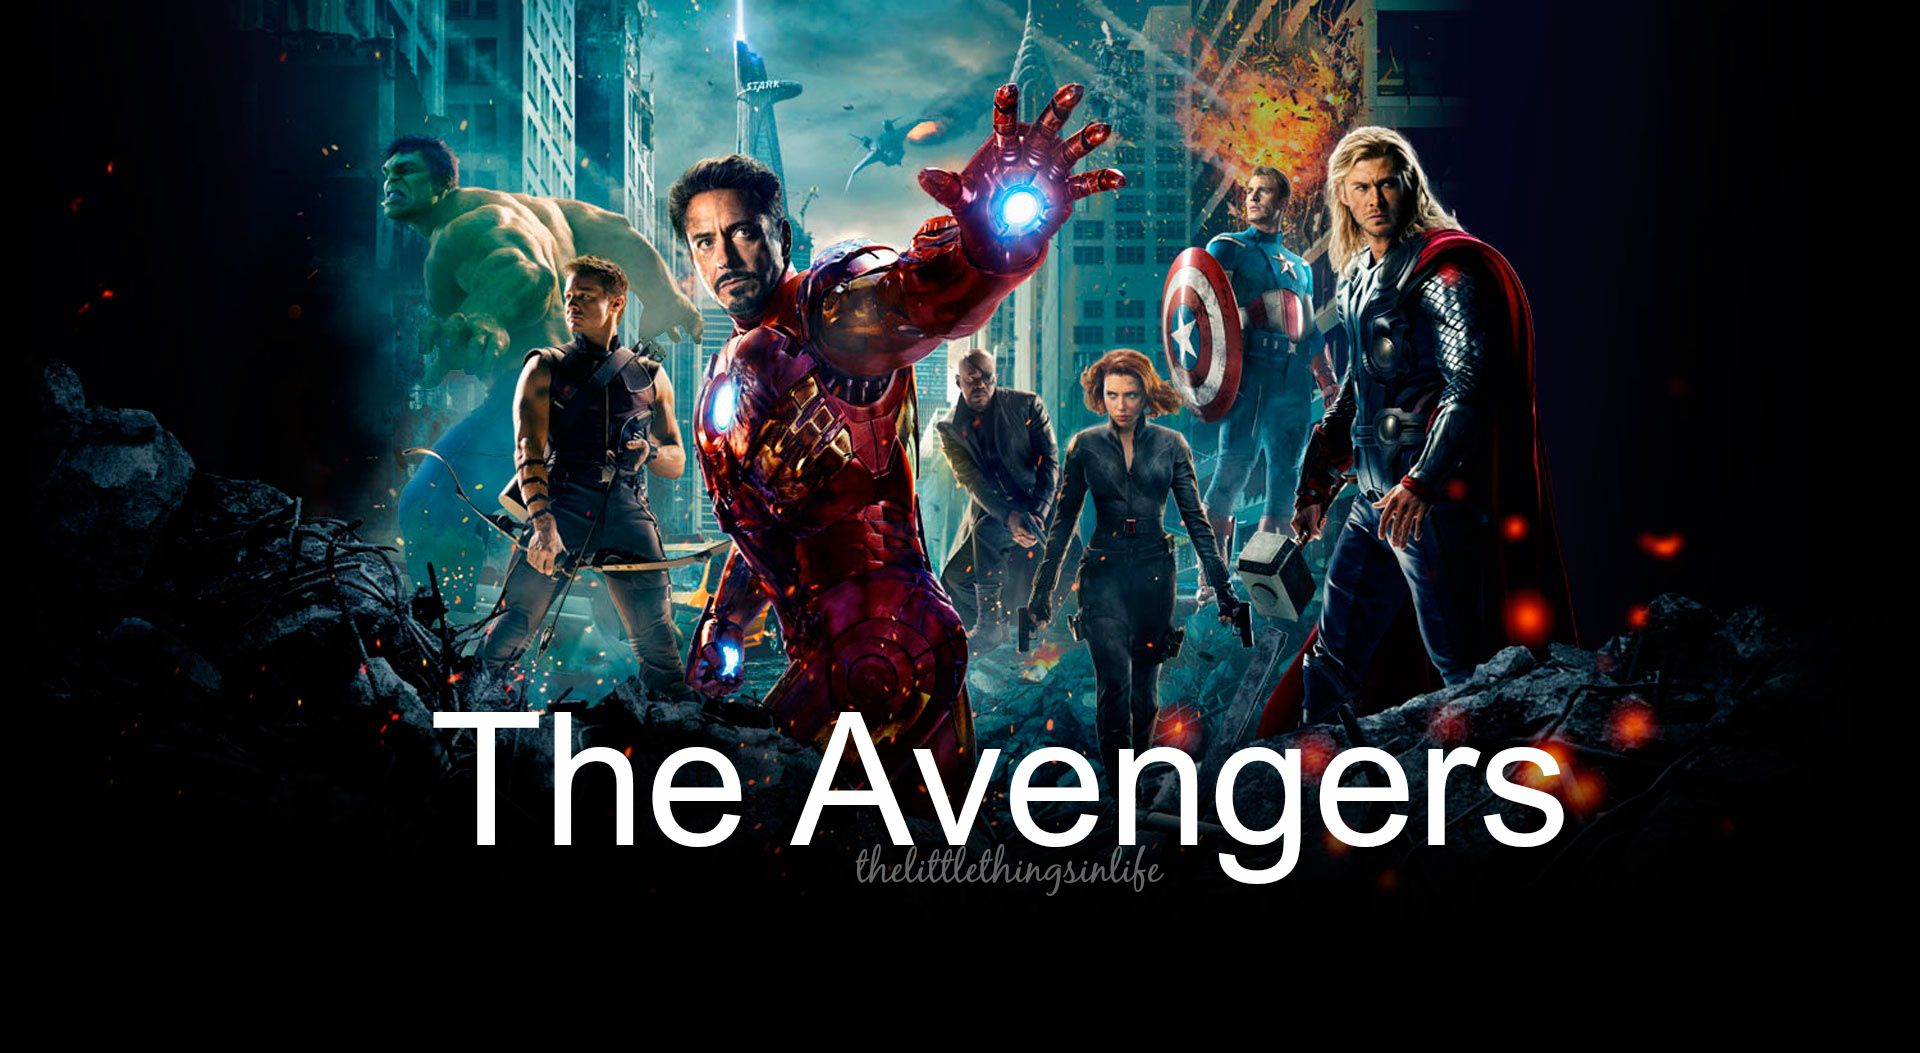 The Avengers Love This Movie Thelittlethingsinlife Avengers Wallpaper Avengers Avengers 2012